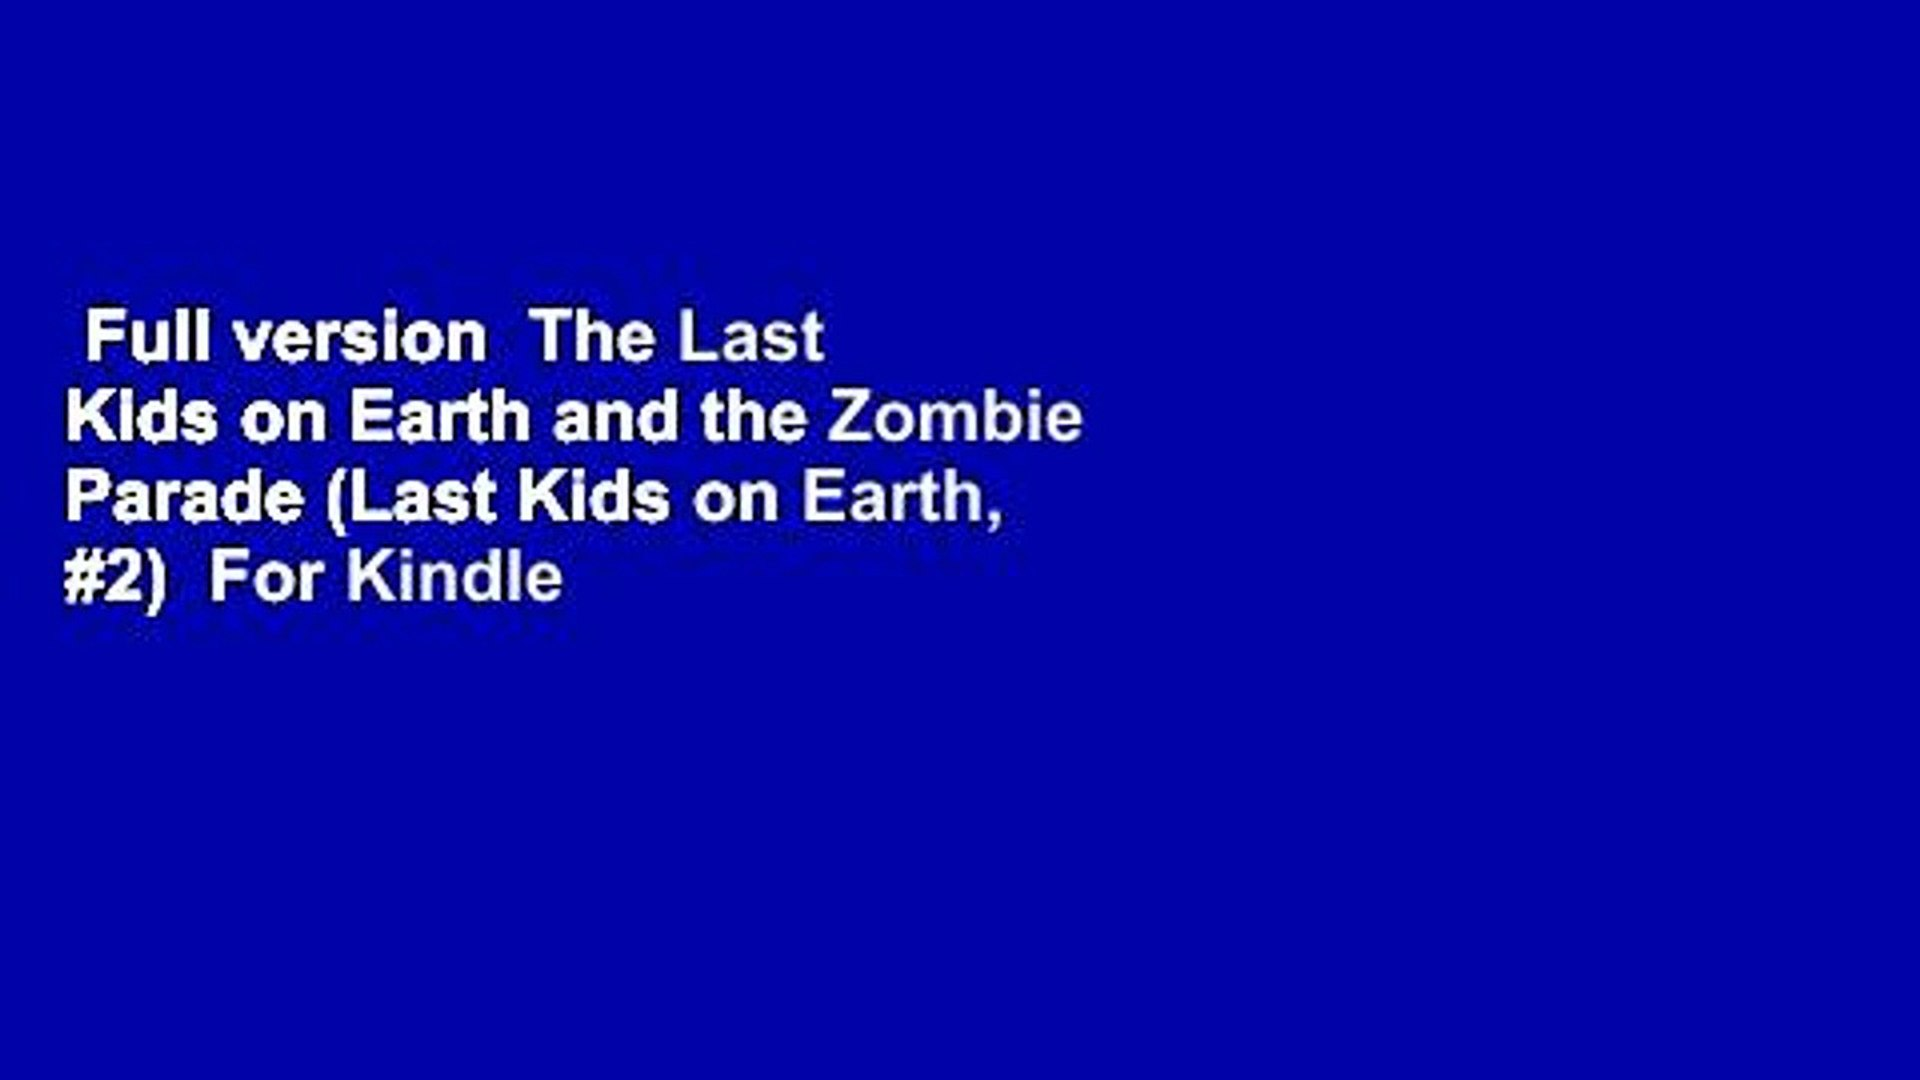 Full version  The Last Kids on Earth and the Zombie Parade (Last Kids on Earth, #2)  For Kindle